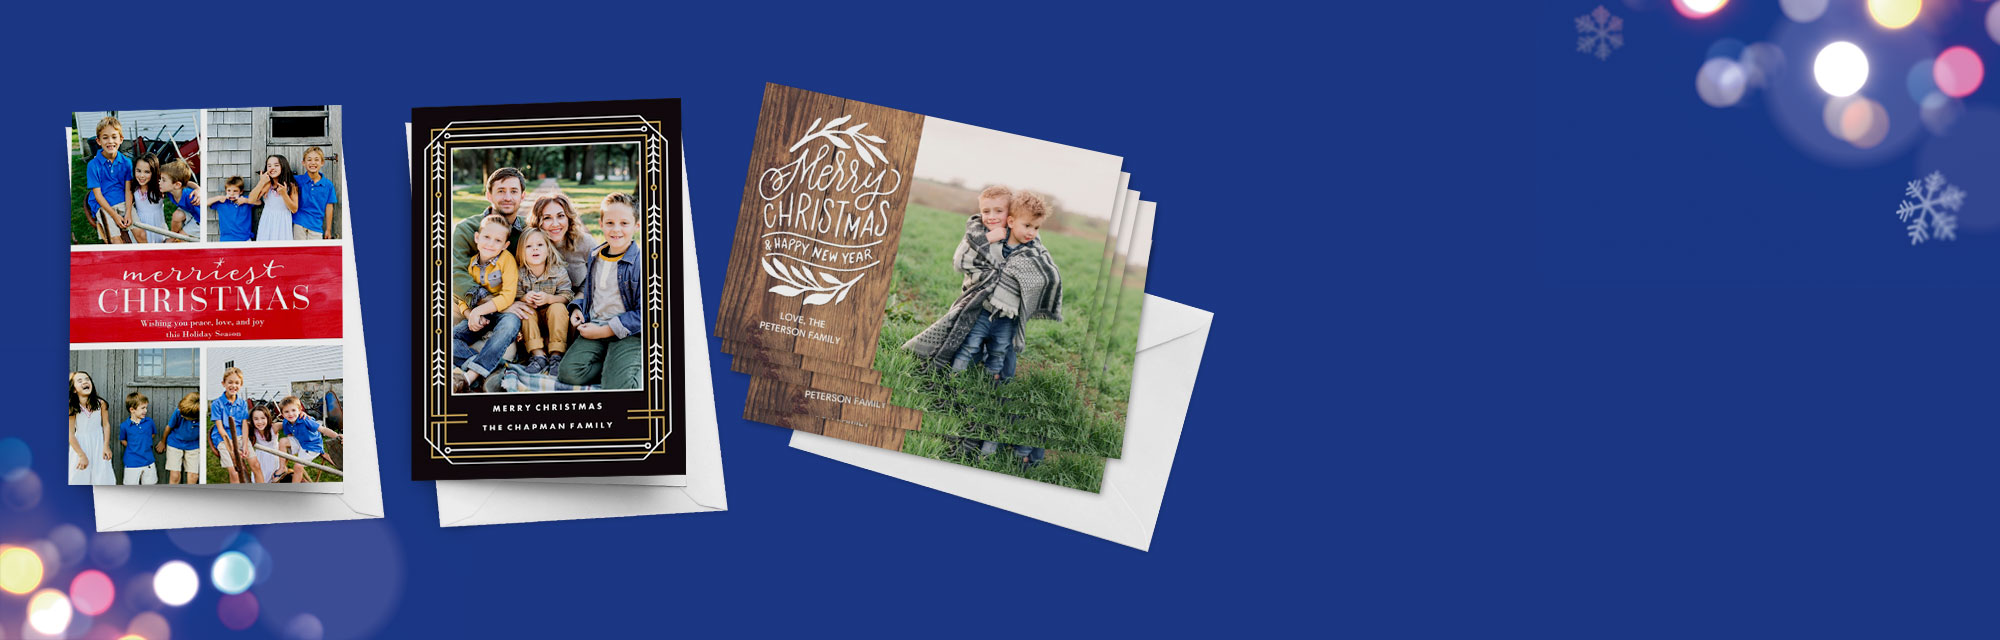 Personalised Photo Cards Share your favourite snaps with loved one's and send them a personalised photo card. We have cards for all occasions and events including birthdays, weddings and new baby's.